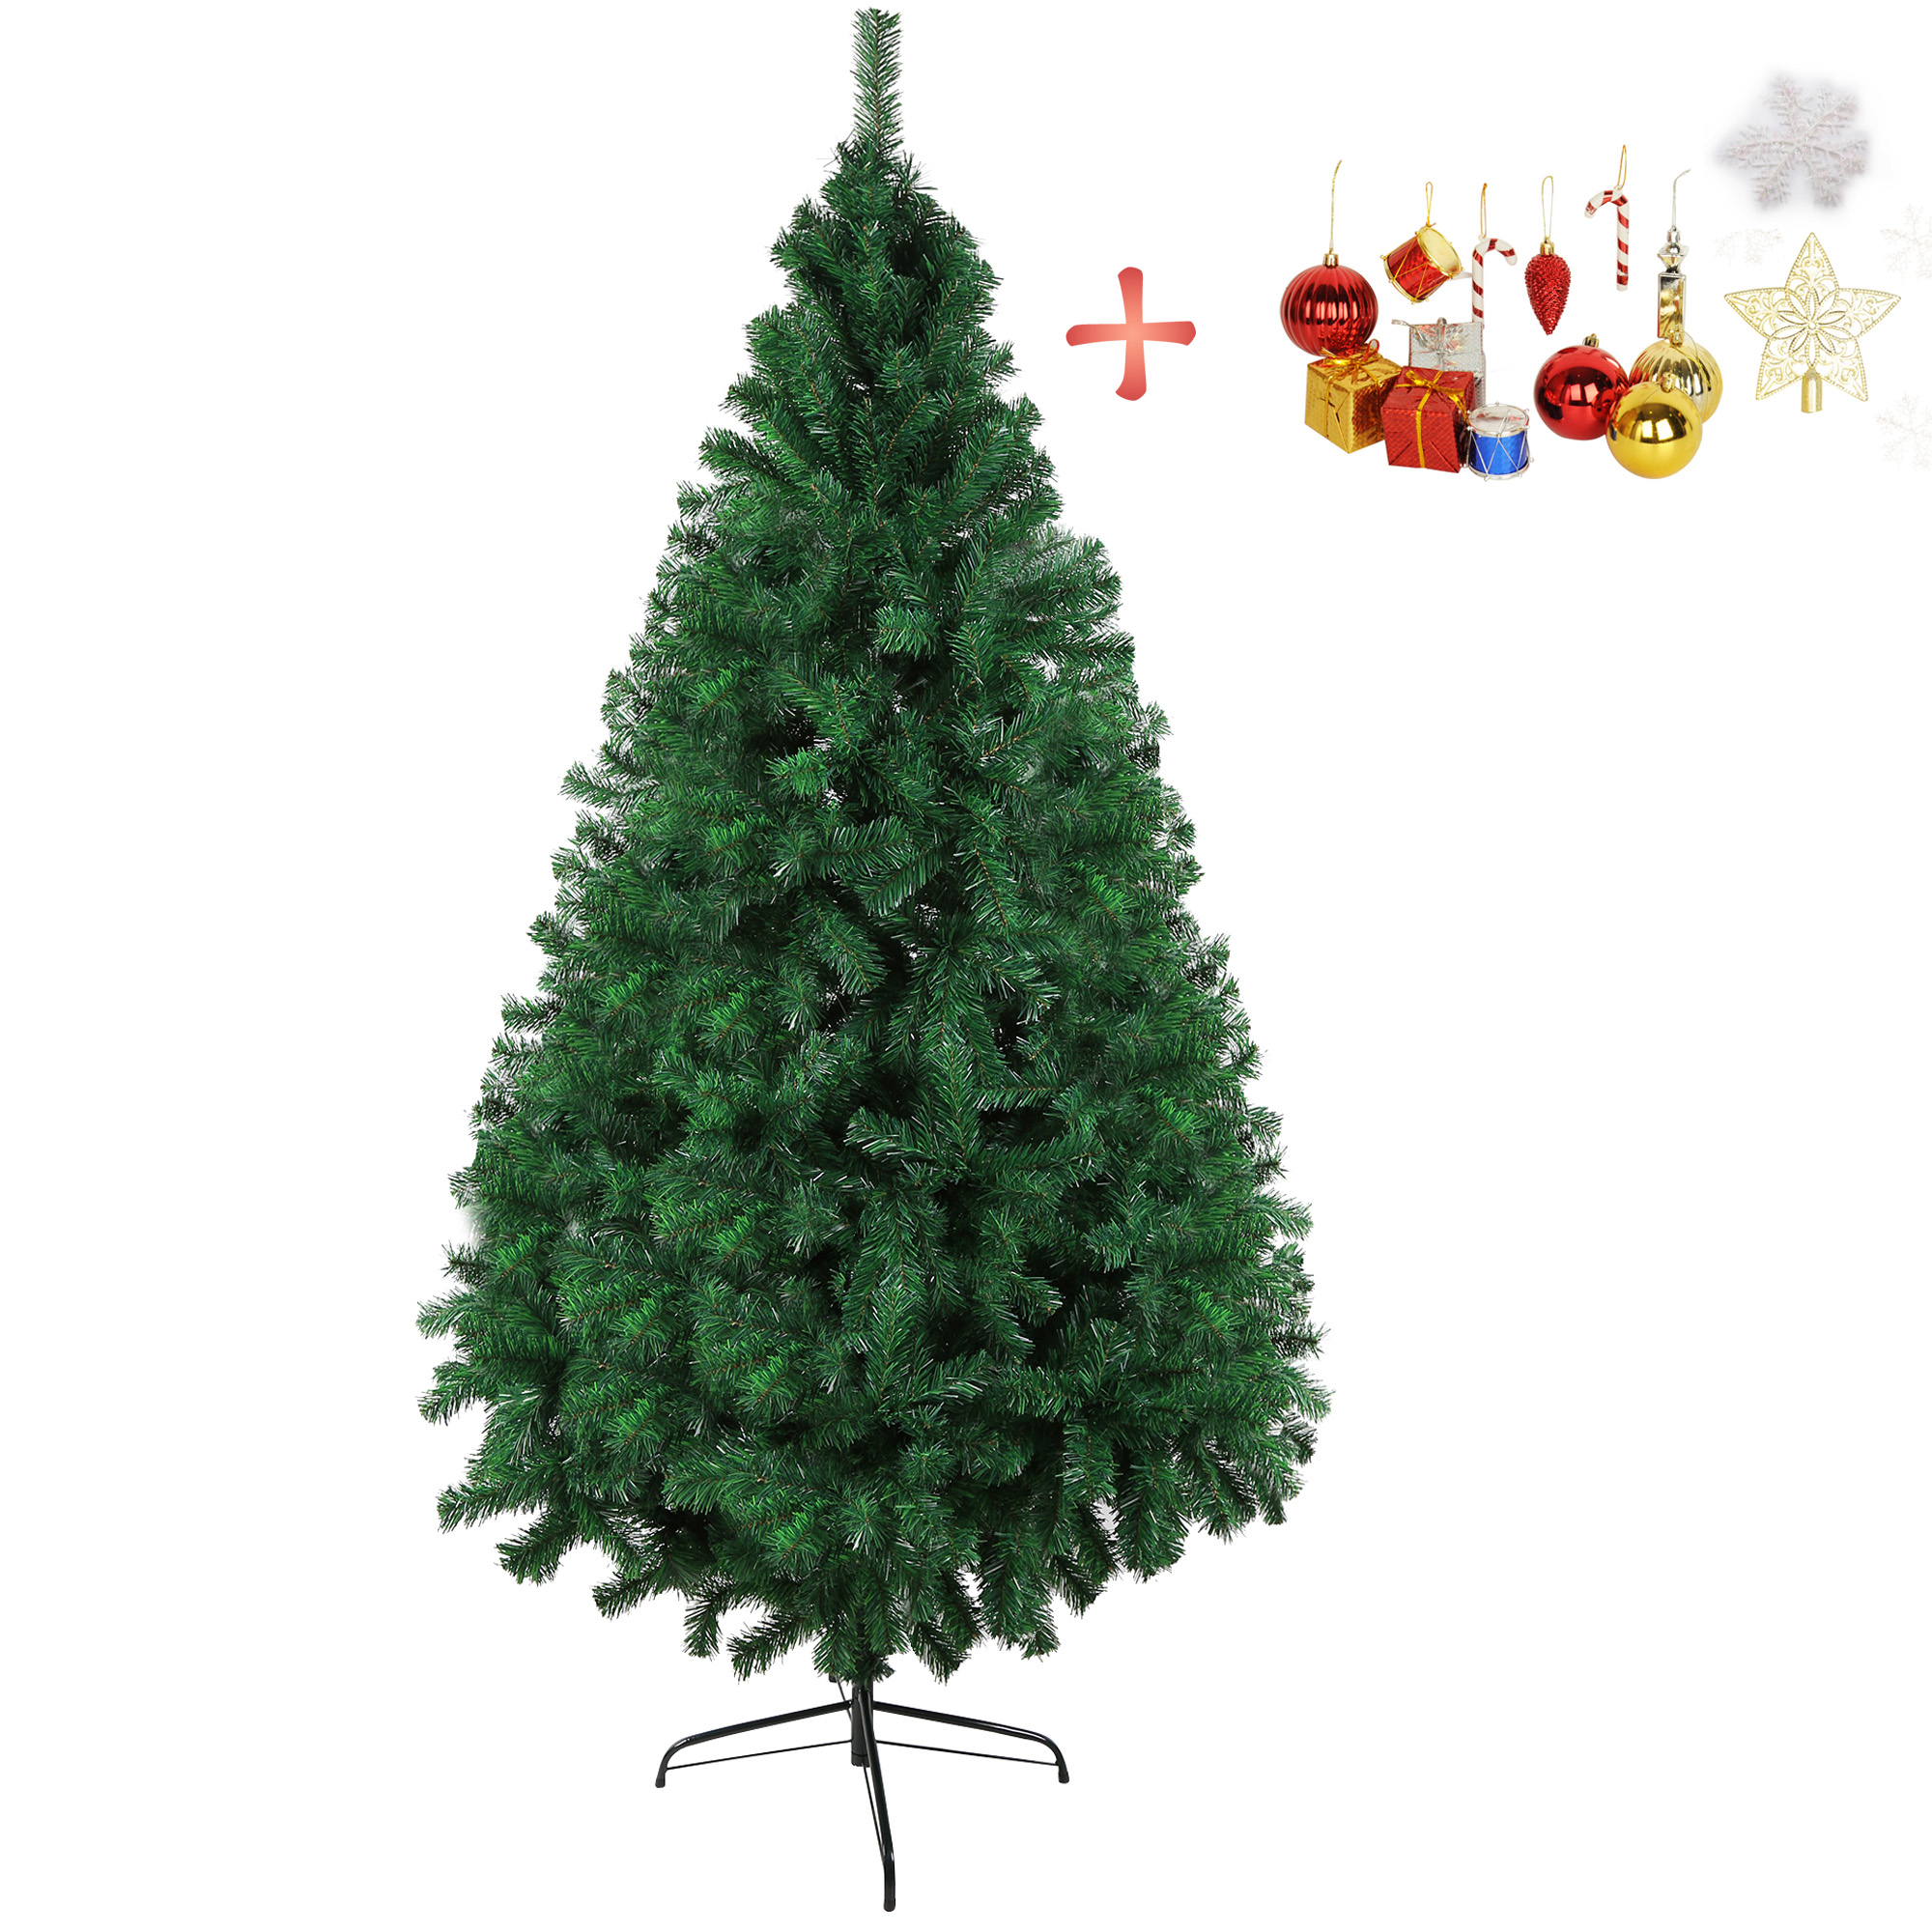 Karmas Product 7 FT Christmas Pine Tree Artificial Fake Xmas Tree with Solid Metal Stand & Decoration for Festival Party Holiday decorations,Green